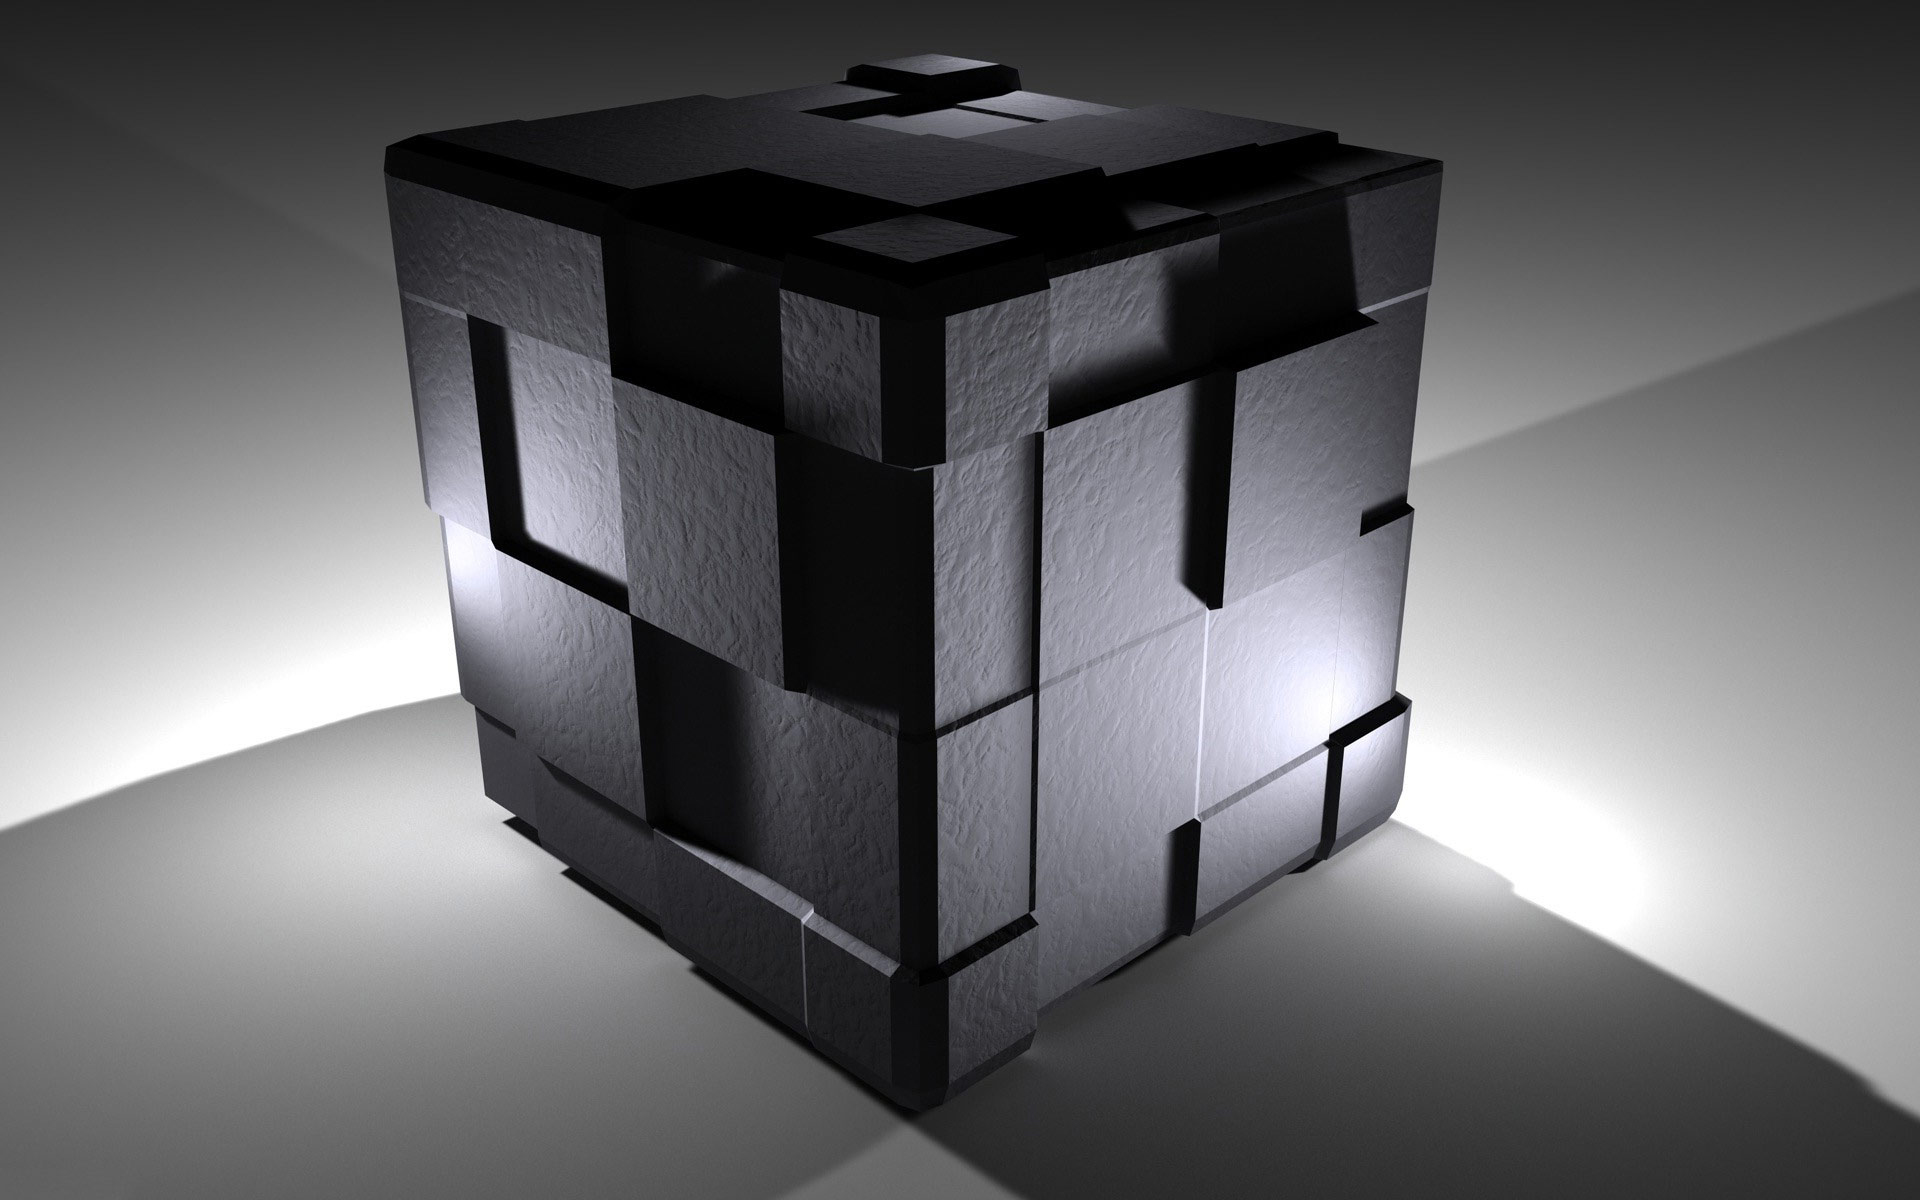 Glowing Black Cube wallpaper